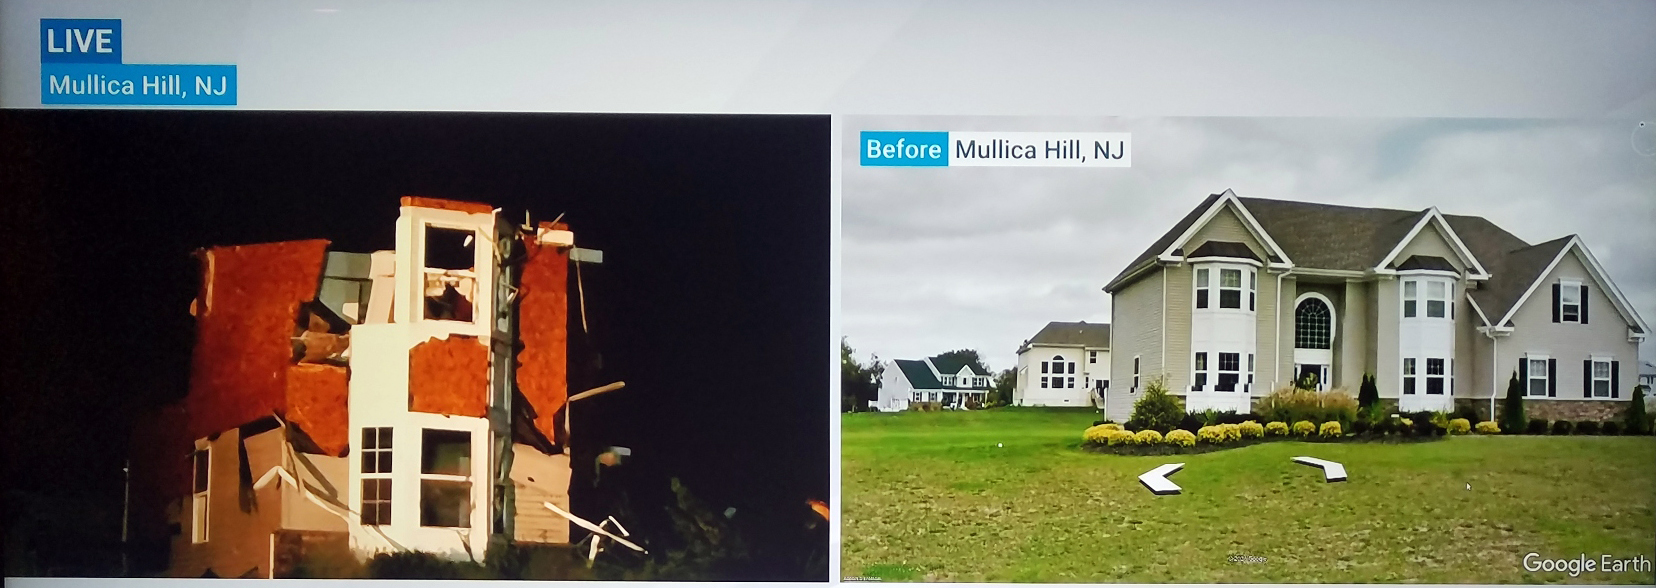 On the left, the remains of a home in the area of Mullica Hill where the EF-3 damage occurred earlier in the evening. The photo on the right shows the home prior to its destruction.